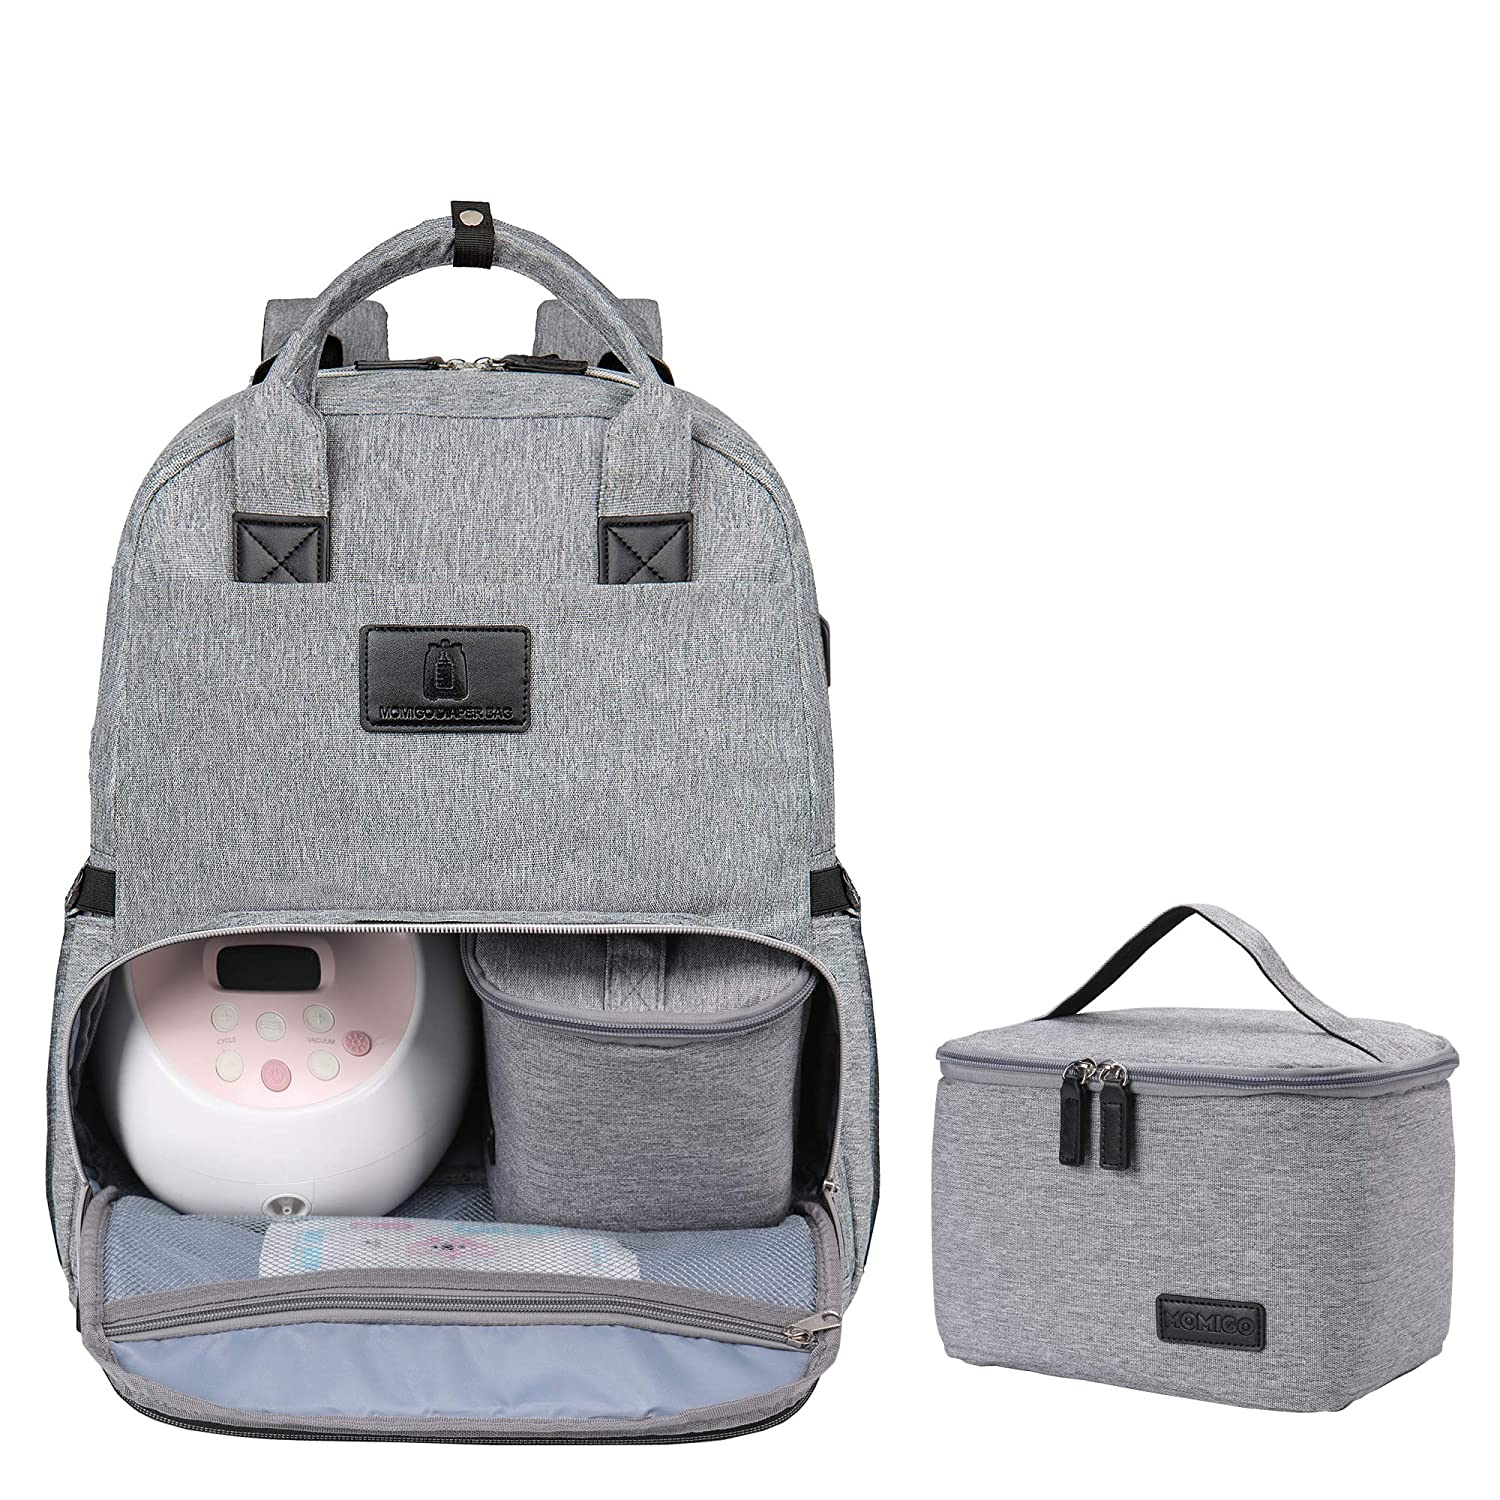 Diaper Bag Breast Pump Backpack - Multi-Function Cooler and Moistureproof Bag Double Layer for Mother Baby Bottle Breast Milk Pump Outdoor Working Backpack with Insulation Bag (Grey)